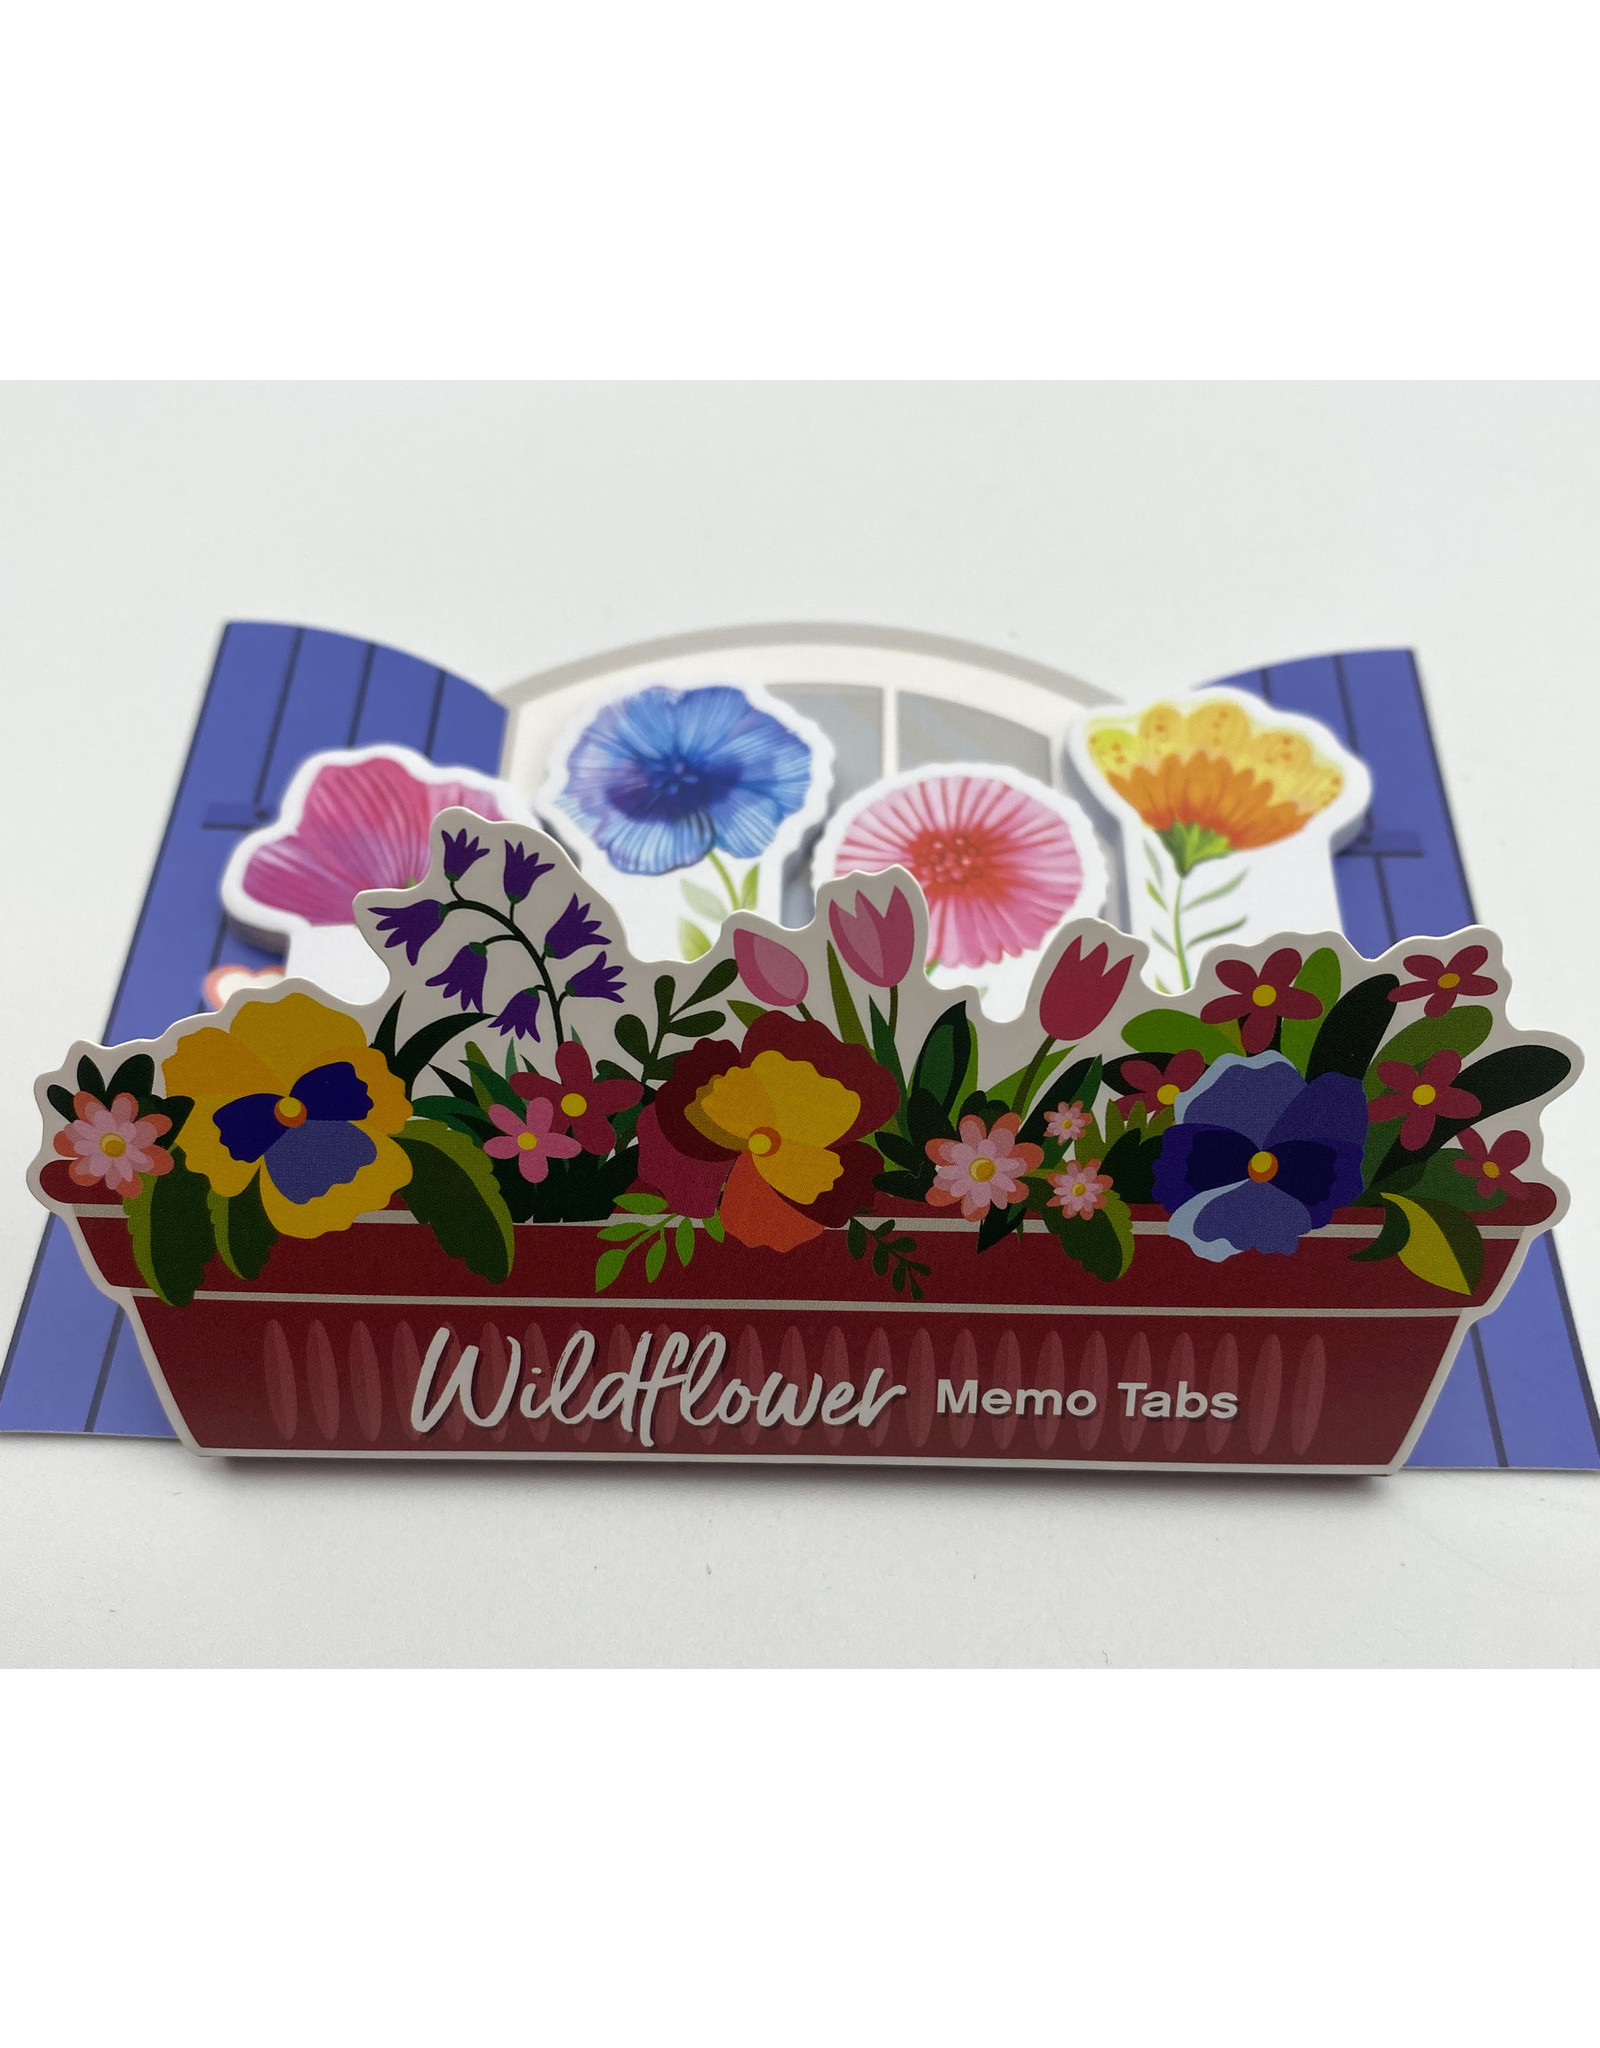 Wildflower Memo Tabs